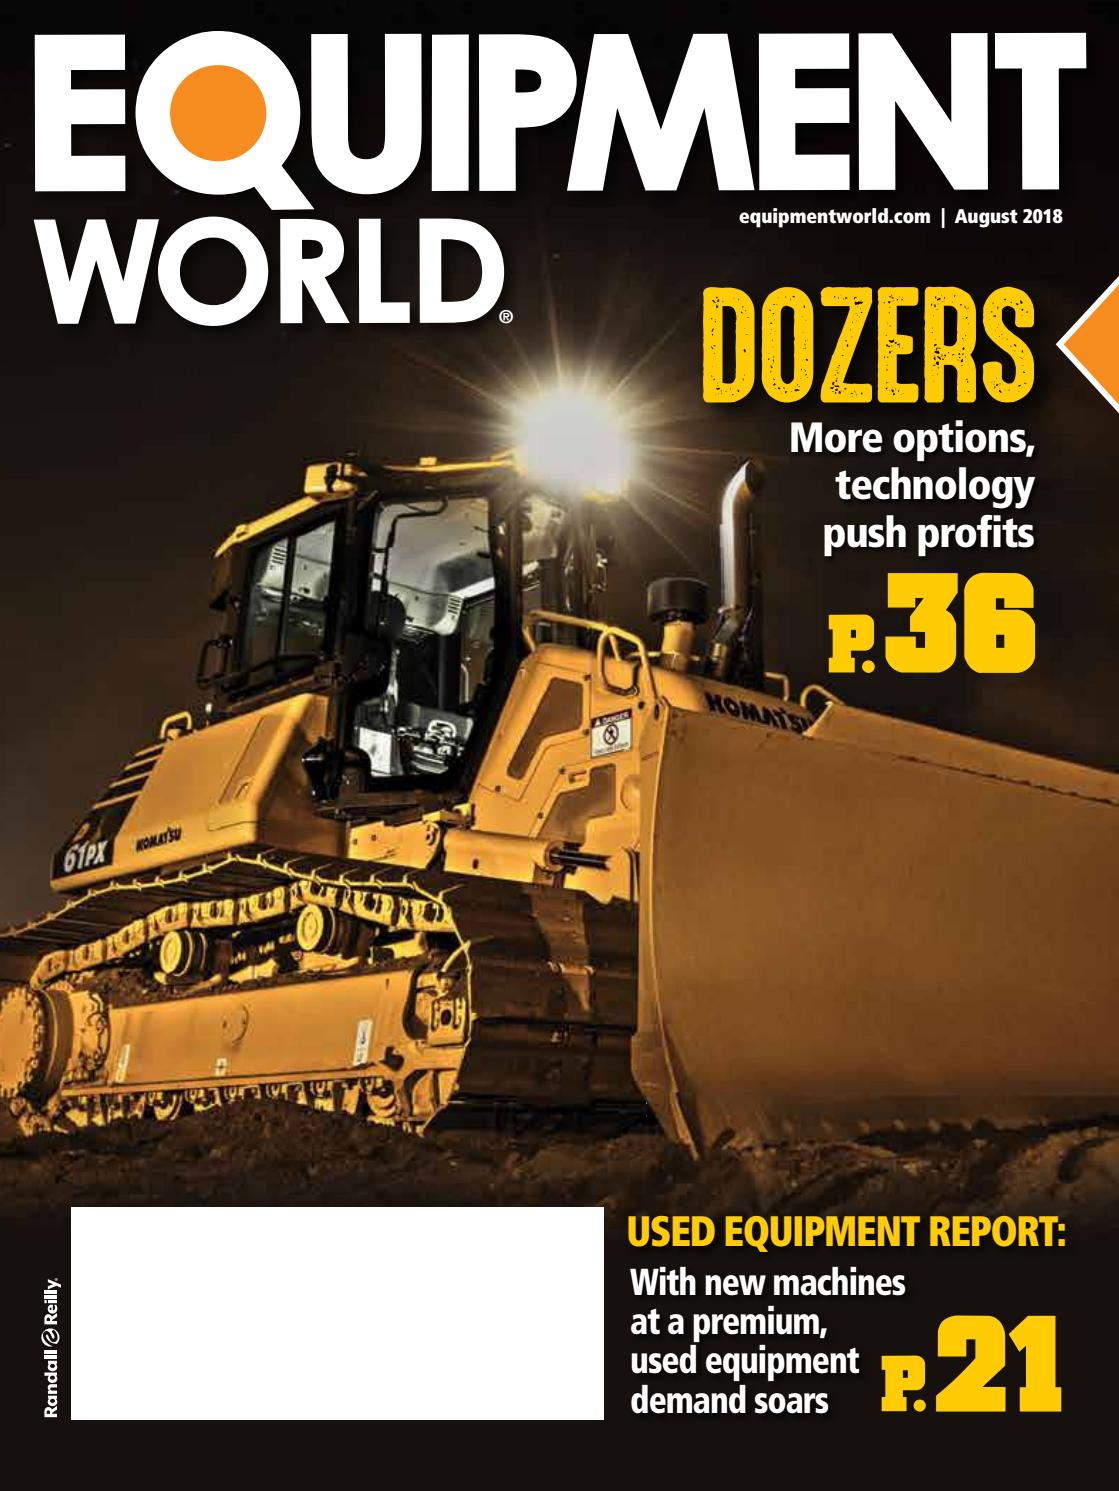 Equipment World August 2018 by Tony Brock - issuu